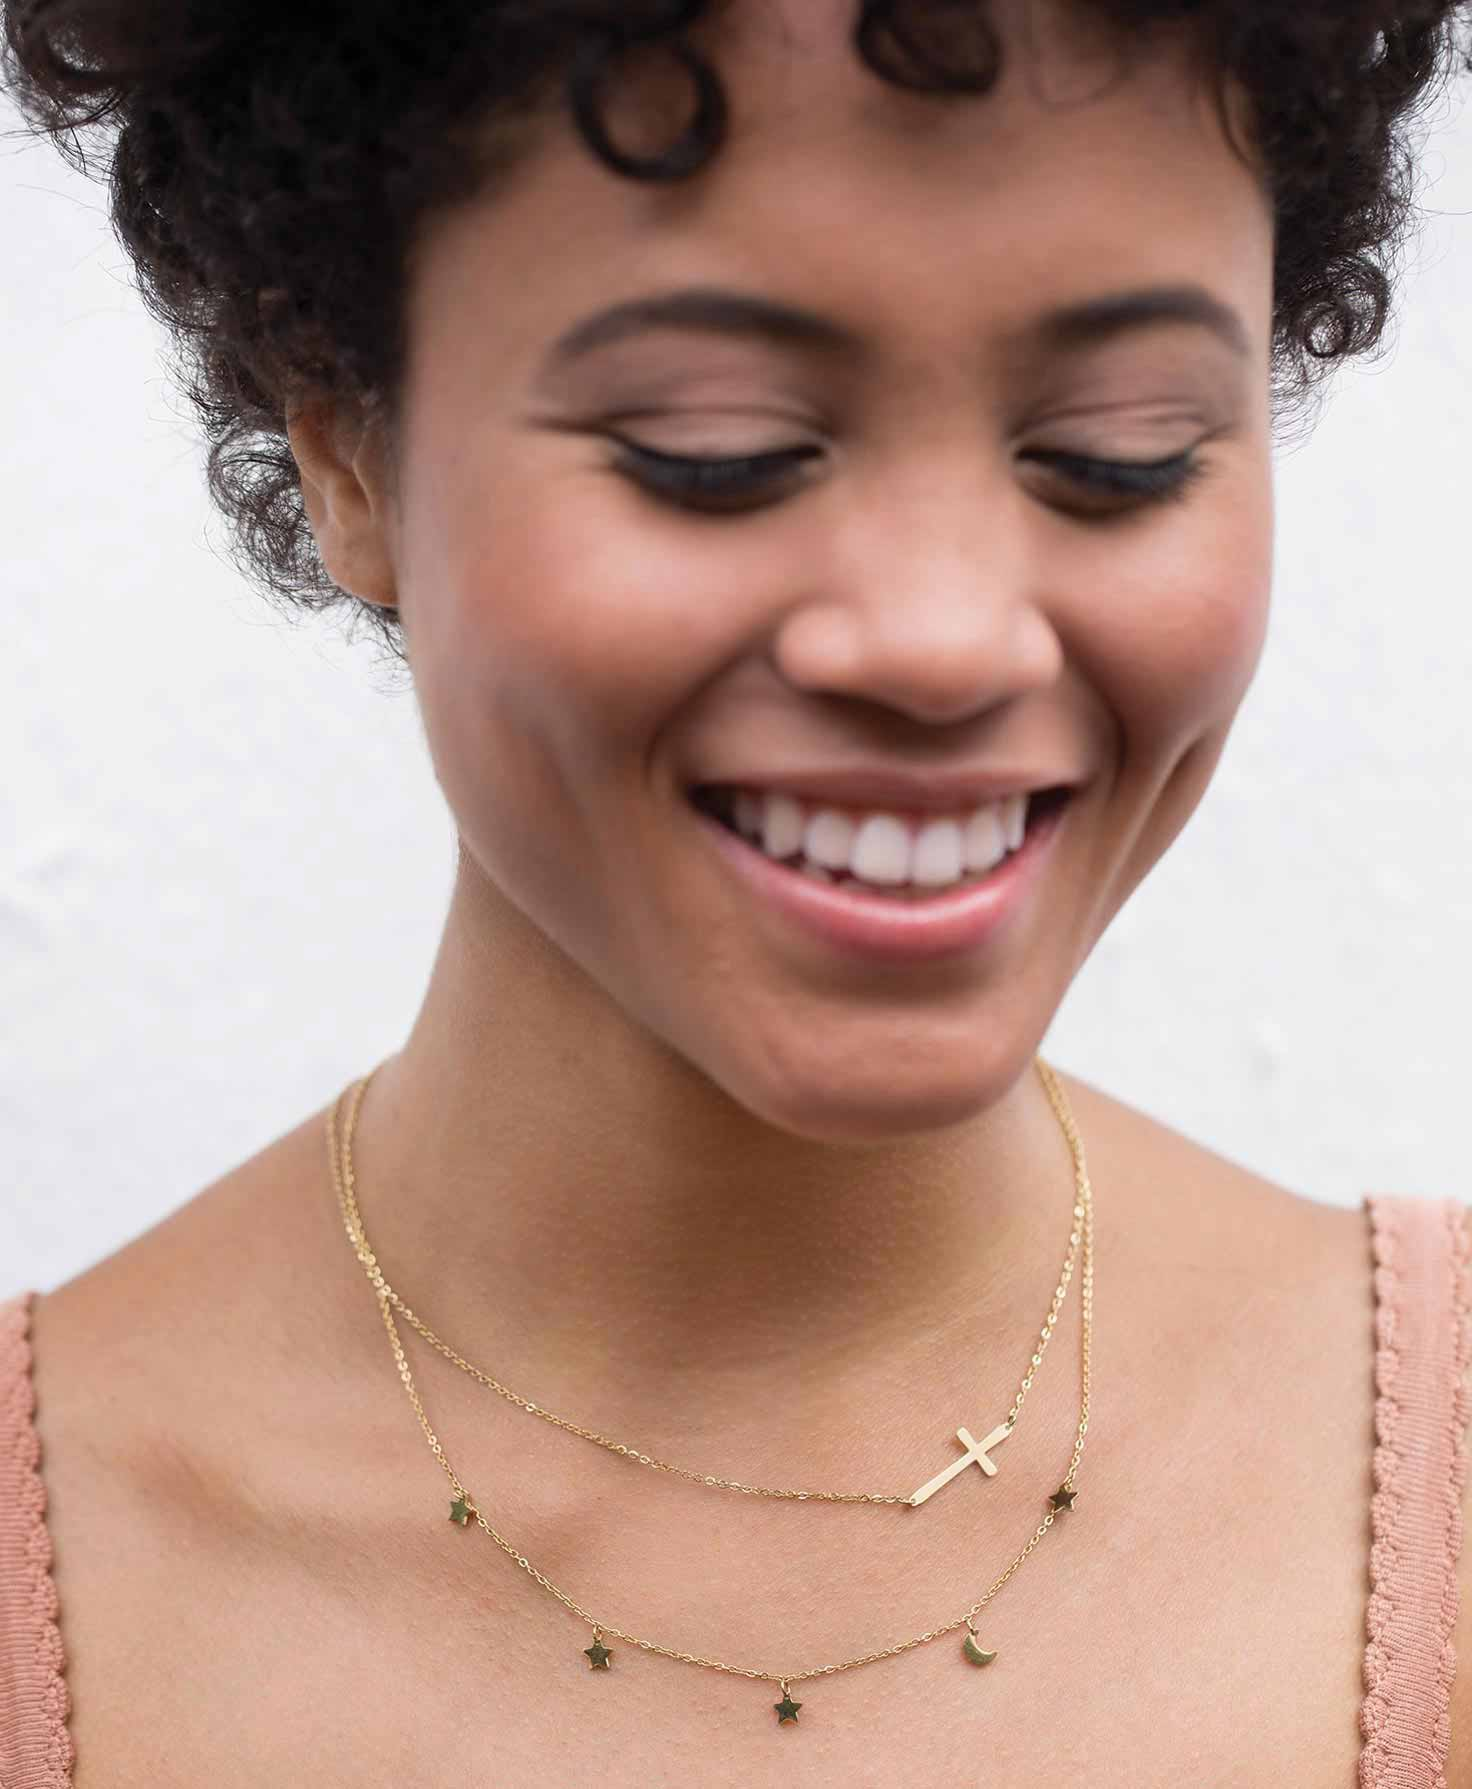 A model wears the Belief Necklace in Gold with the golden Destiny Necklace, which hangs down slightly lower for a layered look.